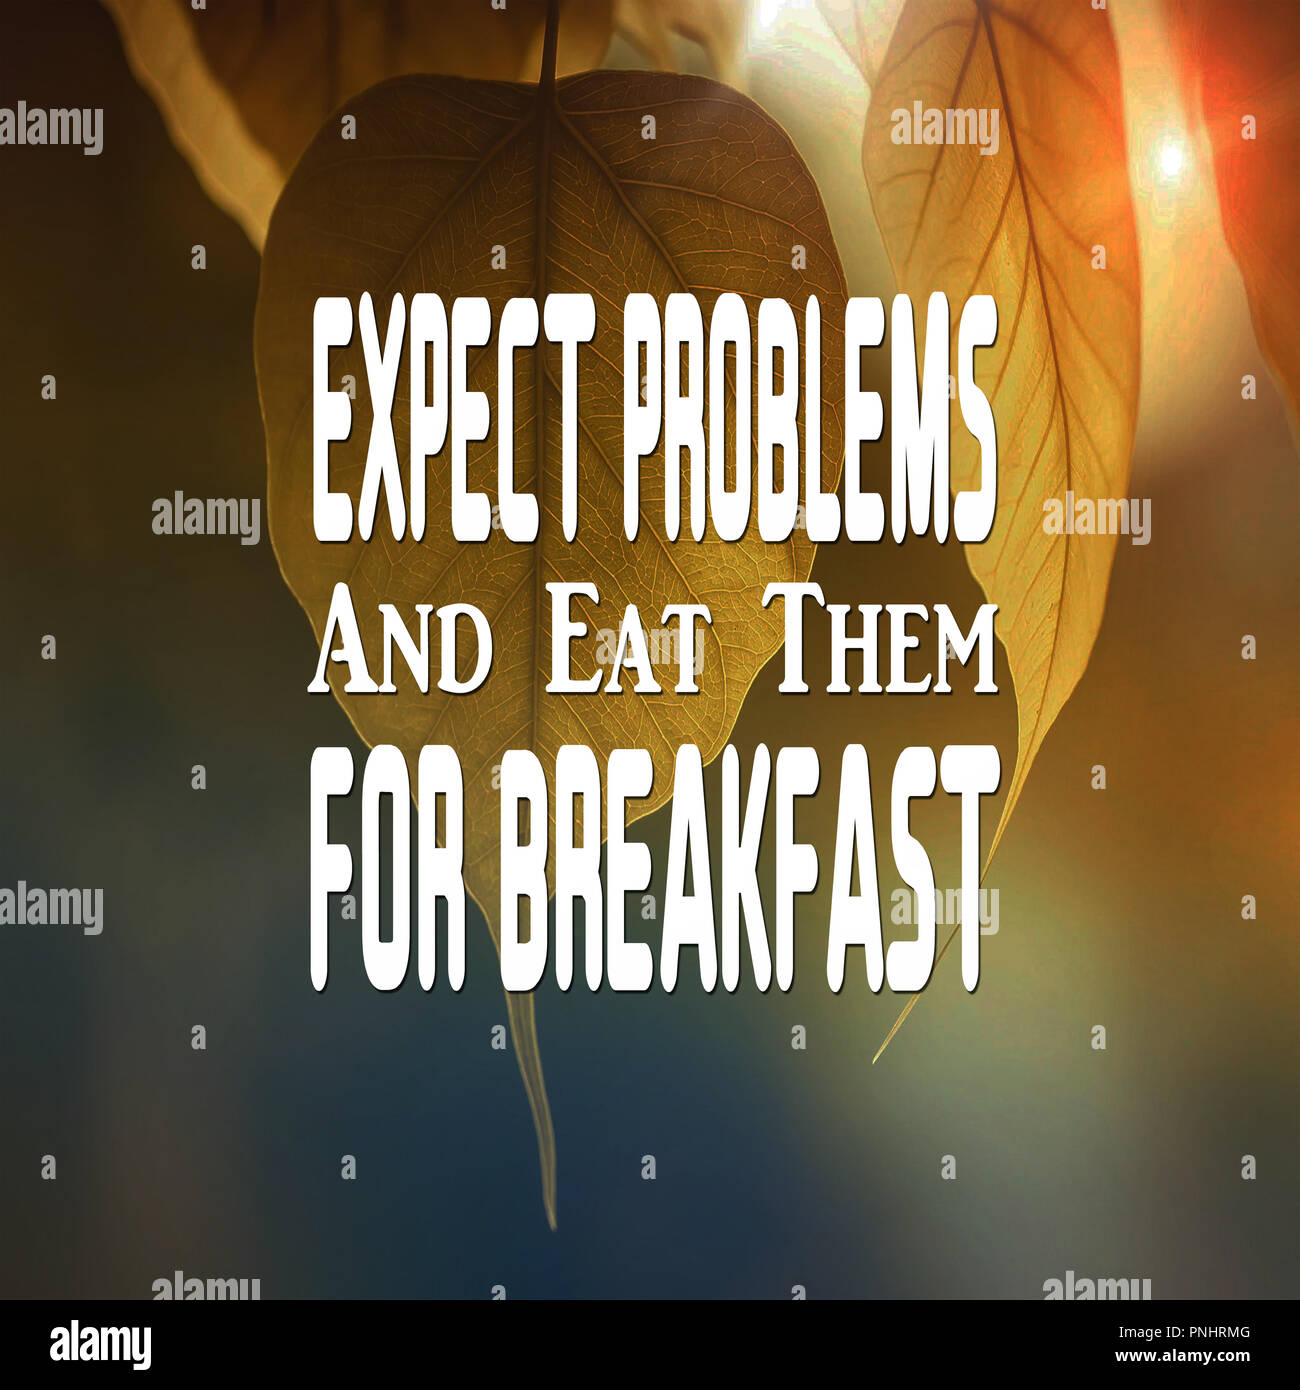 Inspirational Quotes Expect problems and eat them for breakfast, positive, motivational - Stock Image